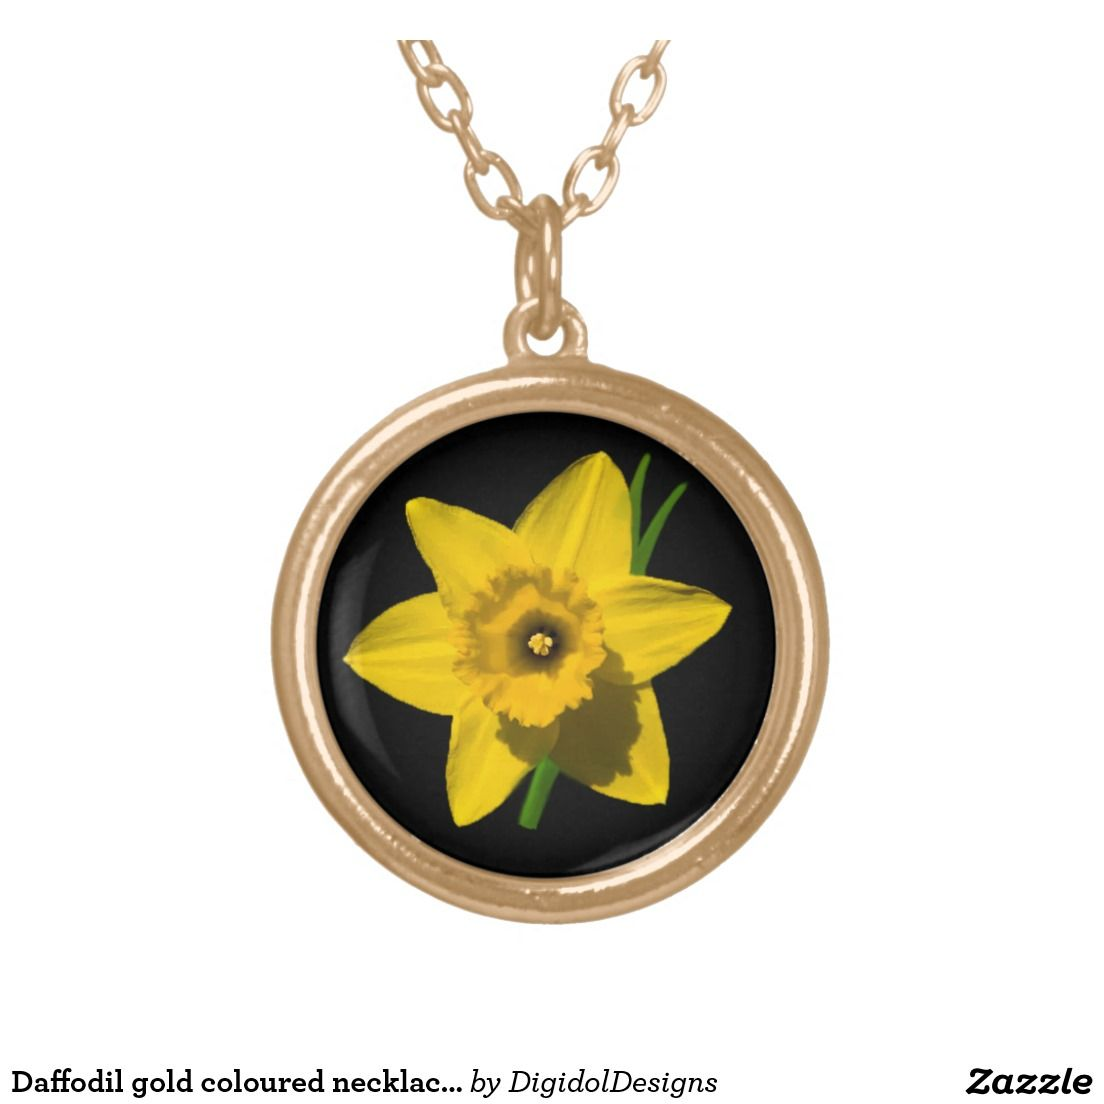 Daffodil gold coloured necklace St.David's Day